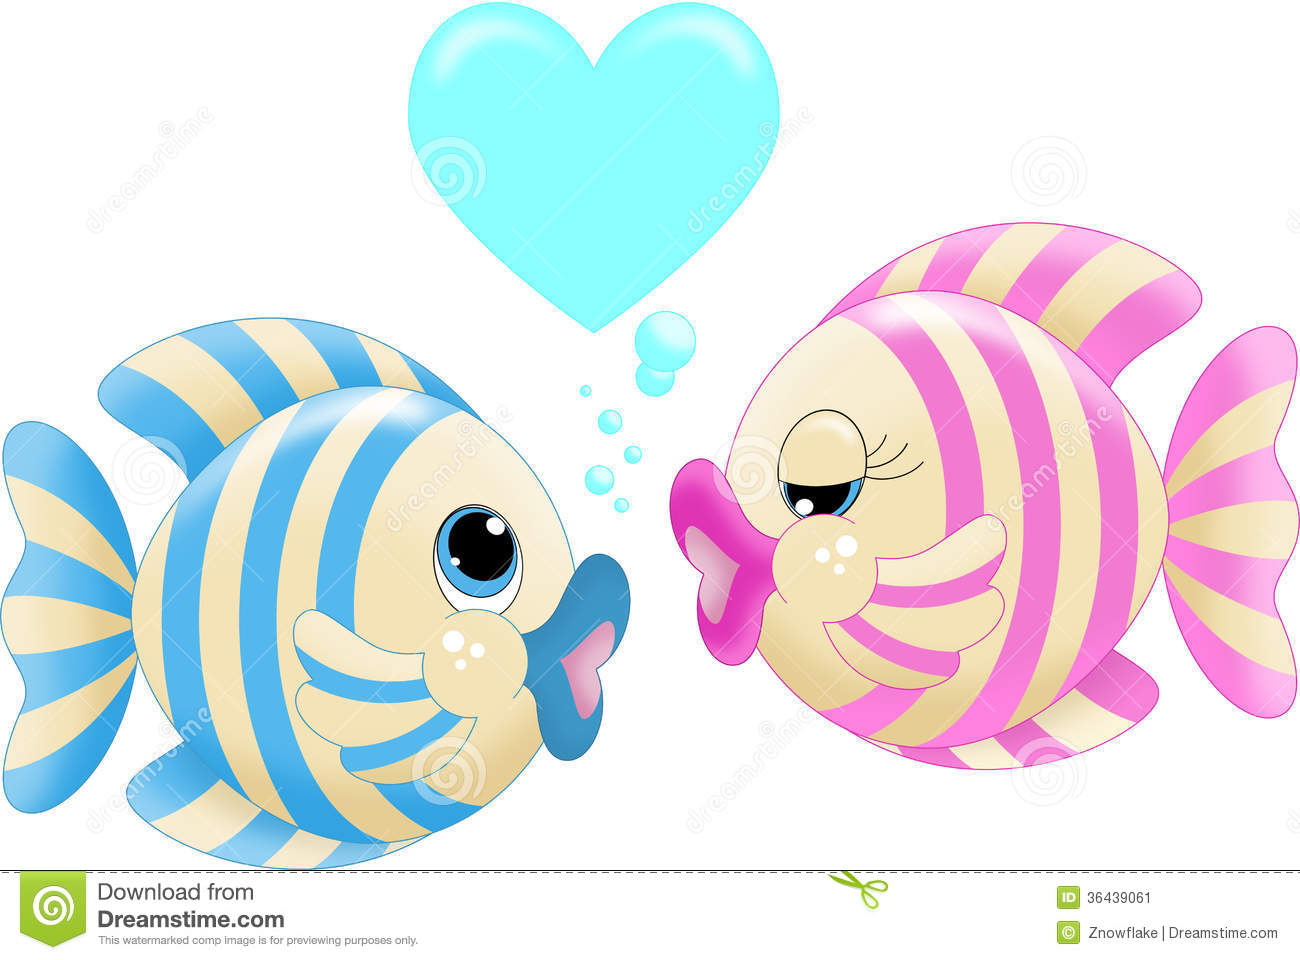 An illustration featuring two fish kissing.